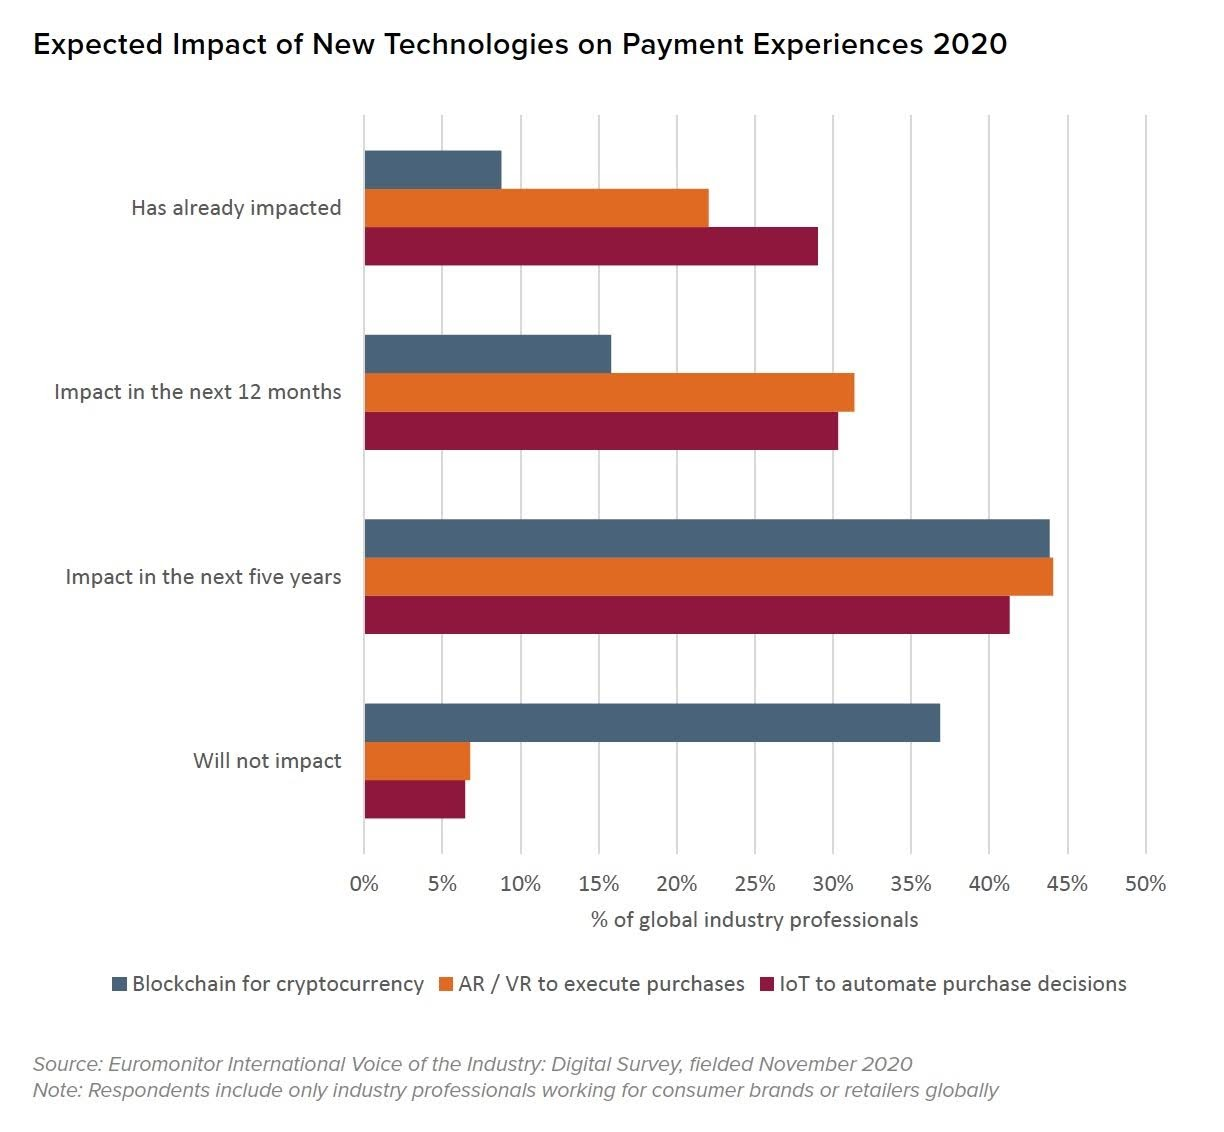 Expected Impact of New Technologies on Payment Experiences 2020. Source: Euromonitor International Voice of the Industry: Digital Survey, fielded November 2020. Note: Respondents include only industry professionals working for consumer brands or retailers globally